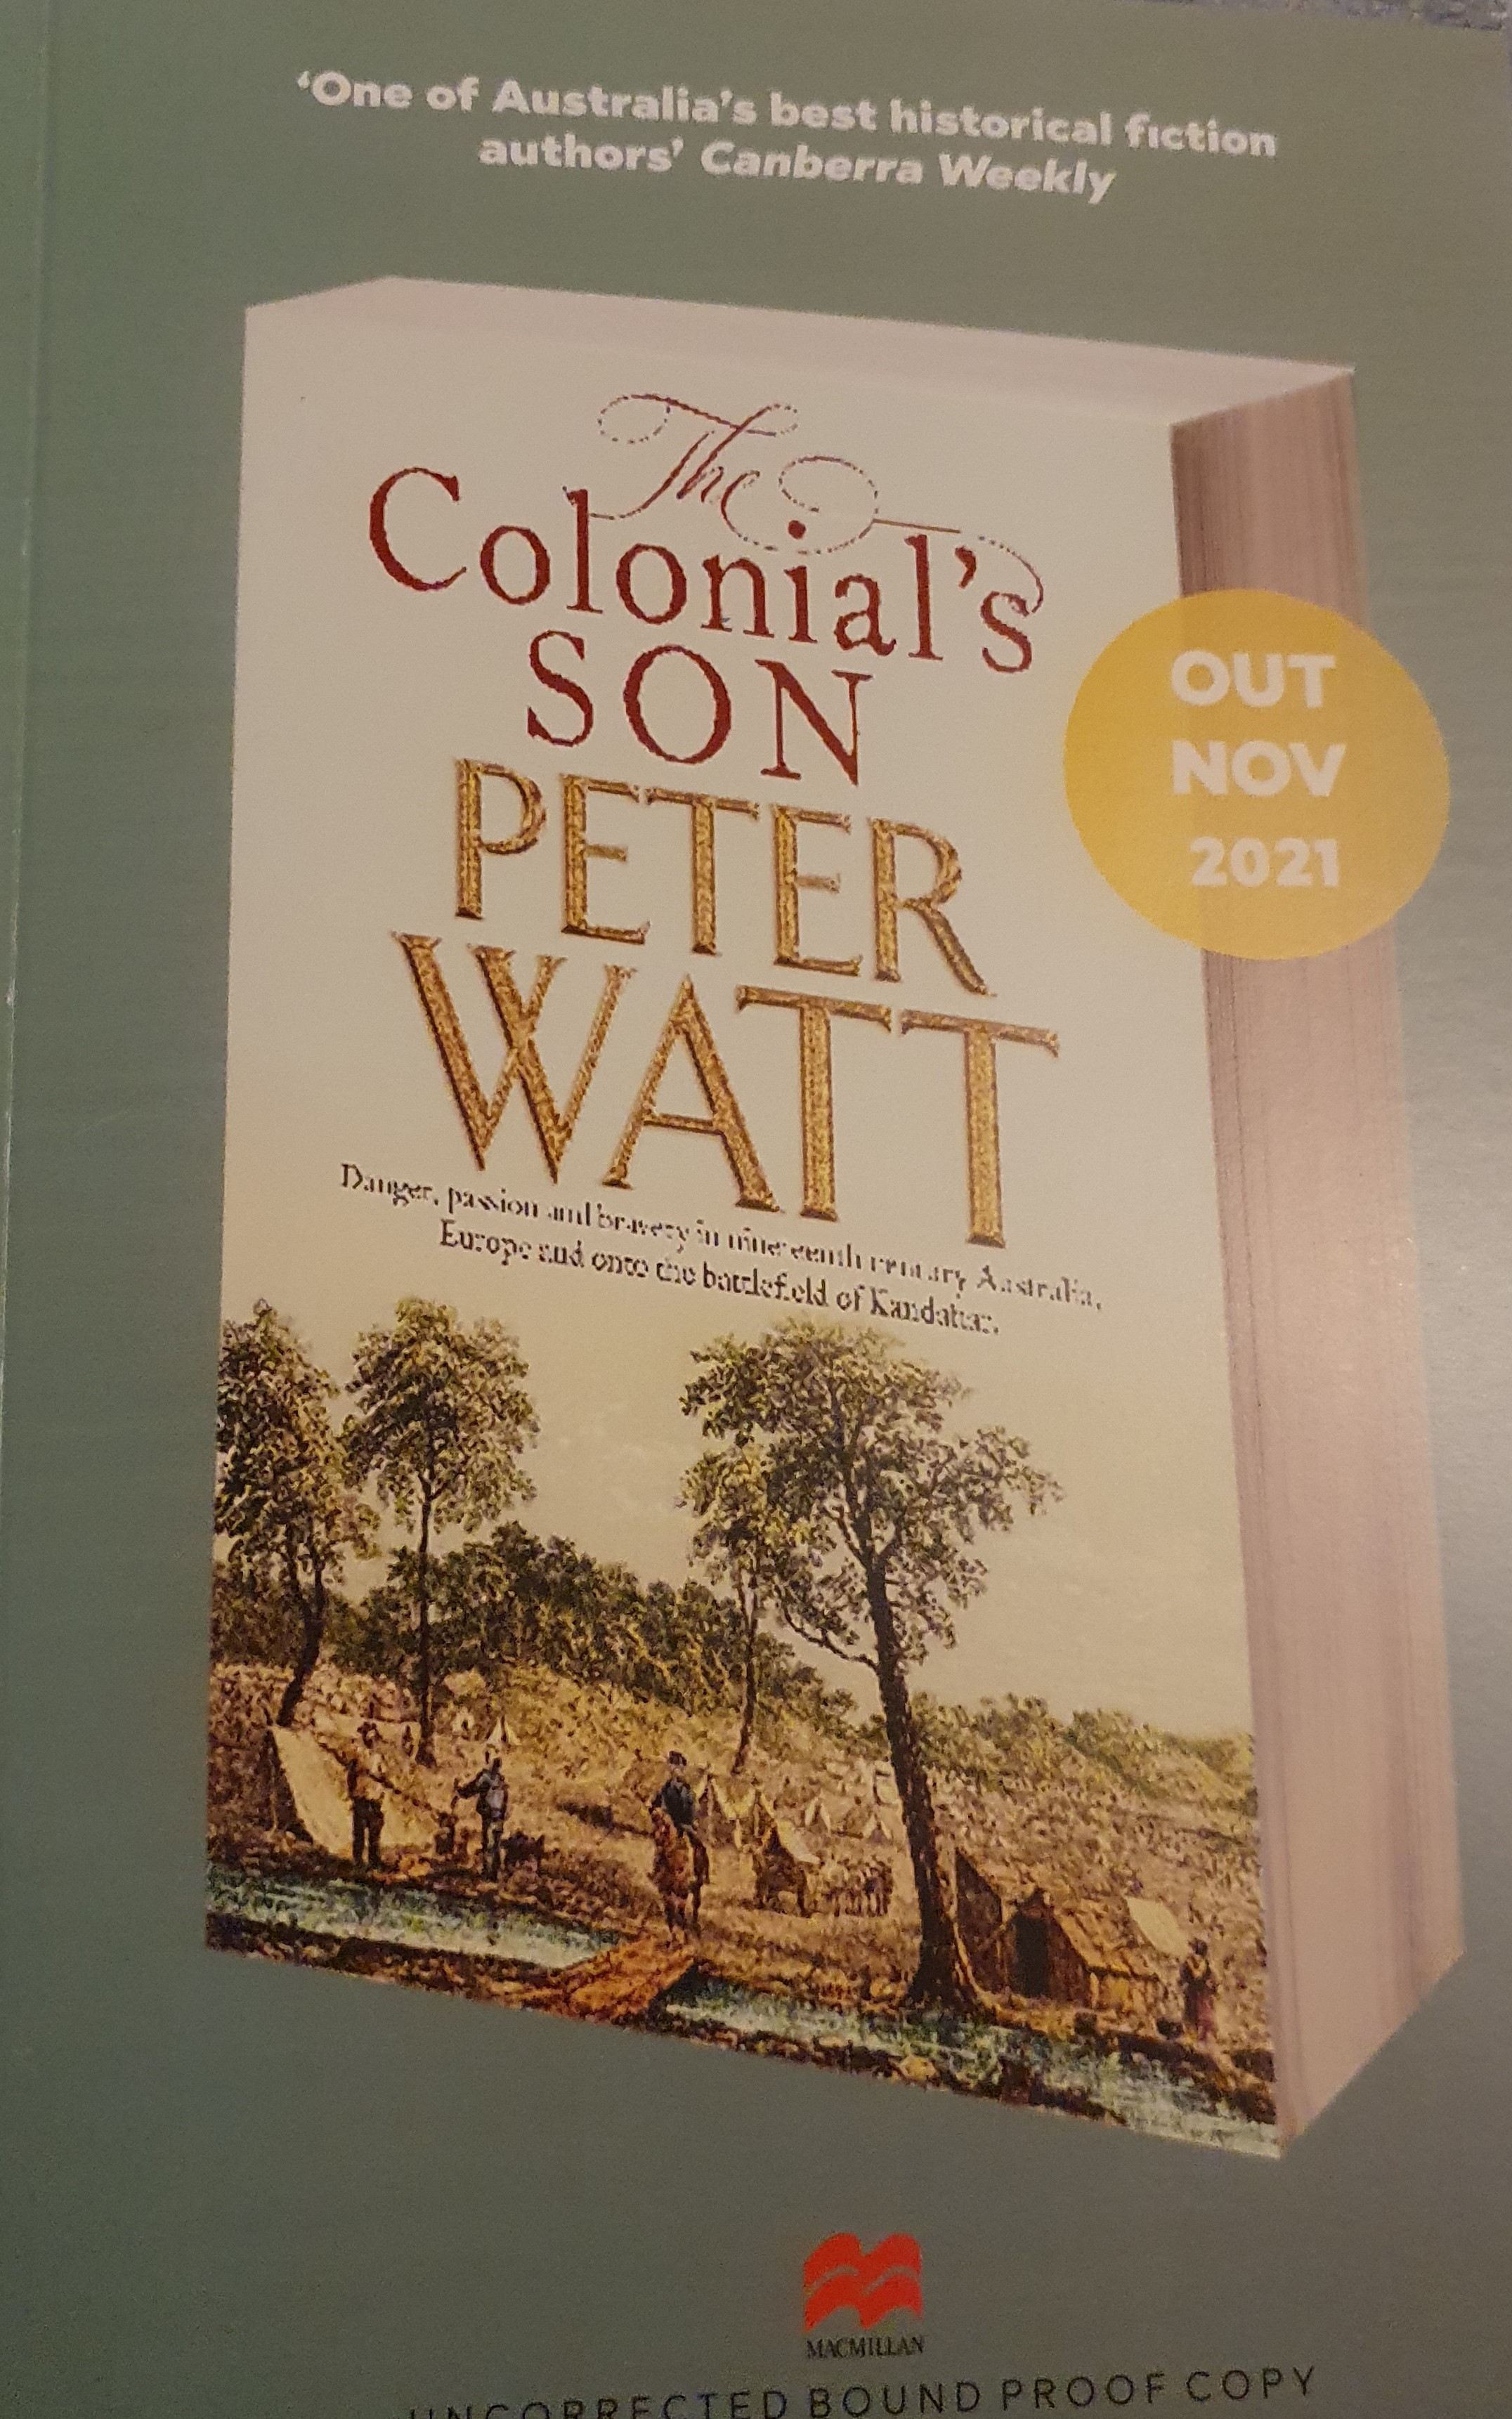 The Colonial's Son Front